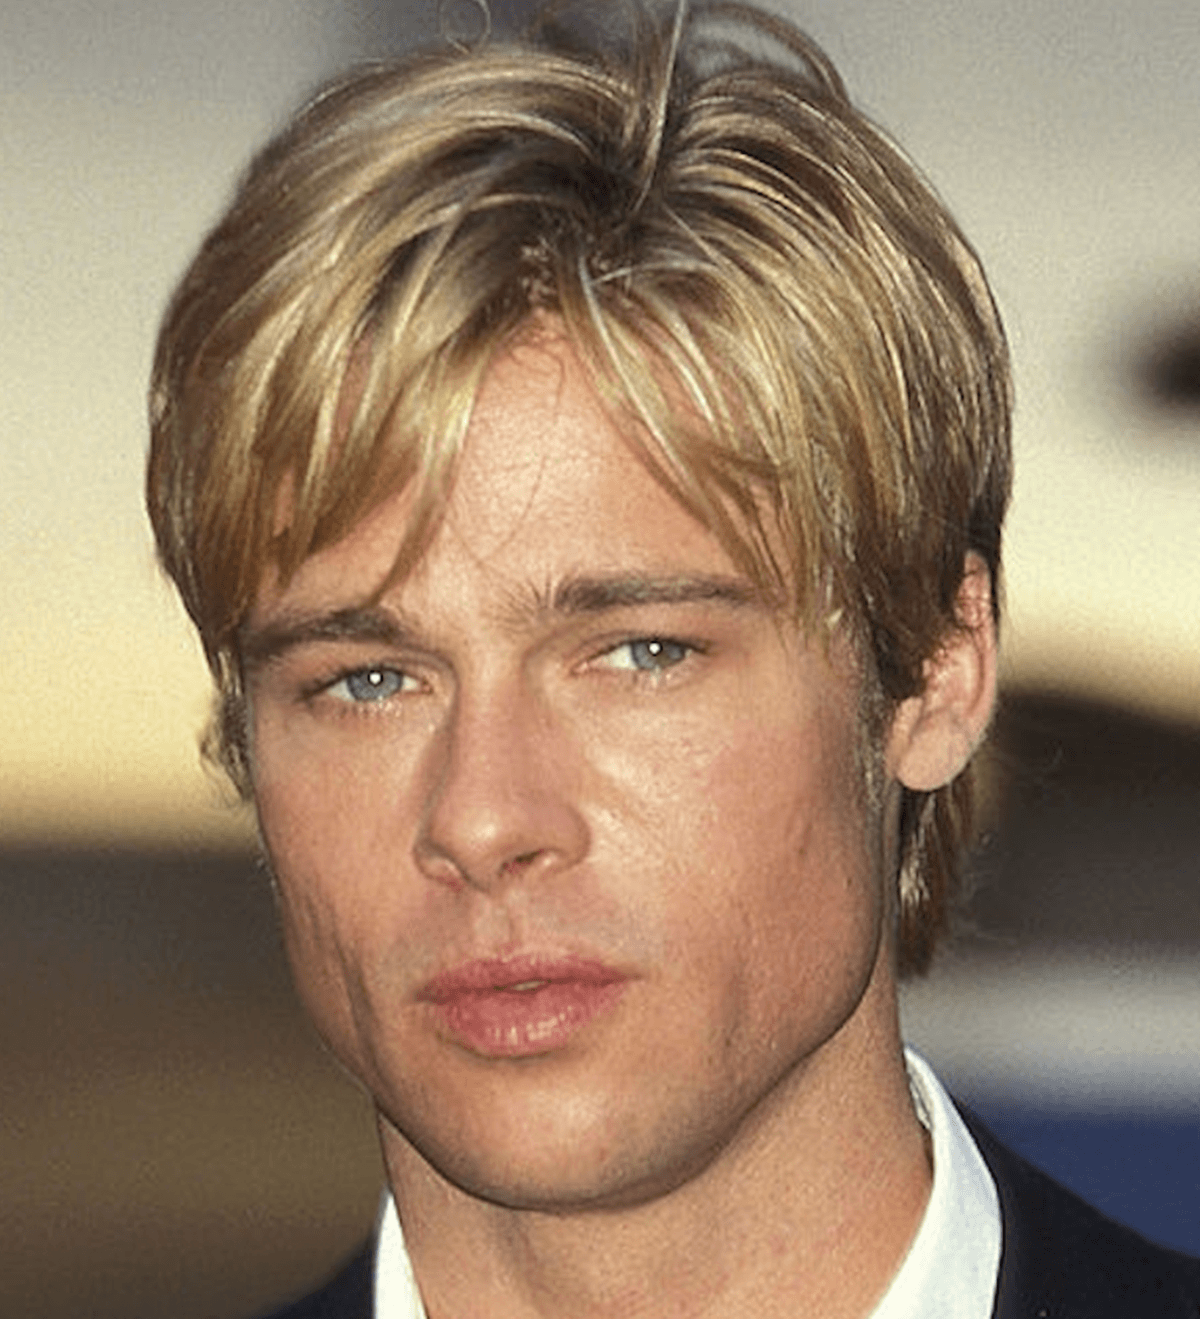 21 22 Fascinating Facts About Your Favourite Hollywood Stars